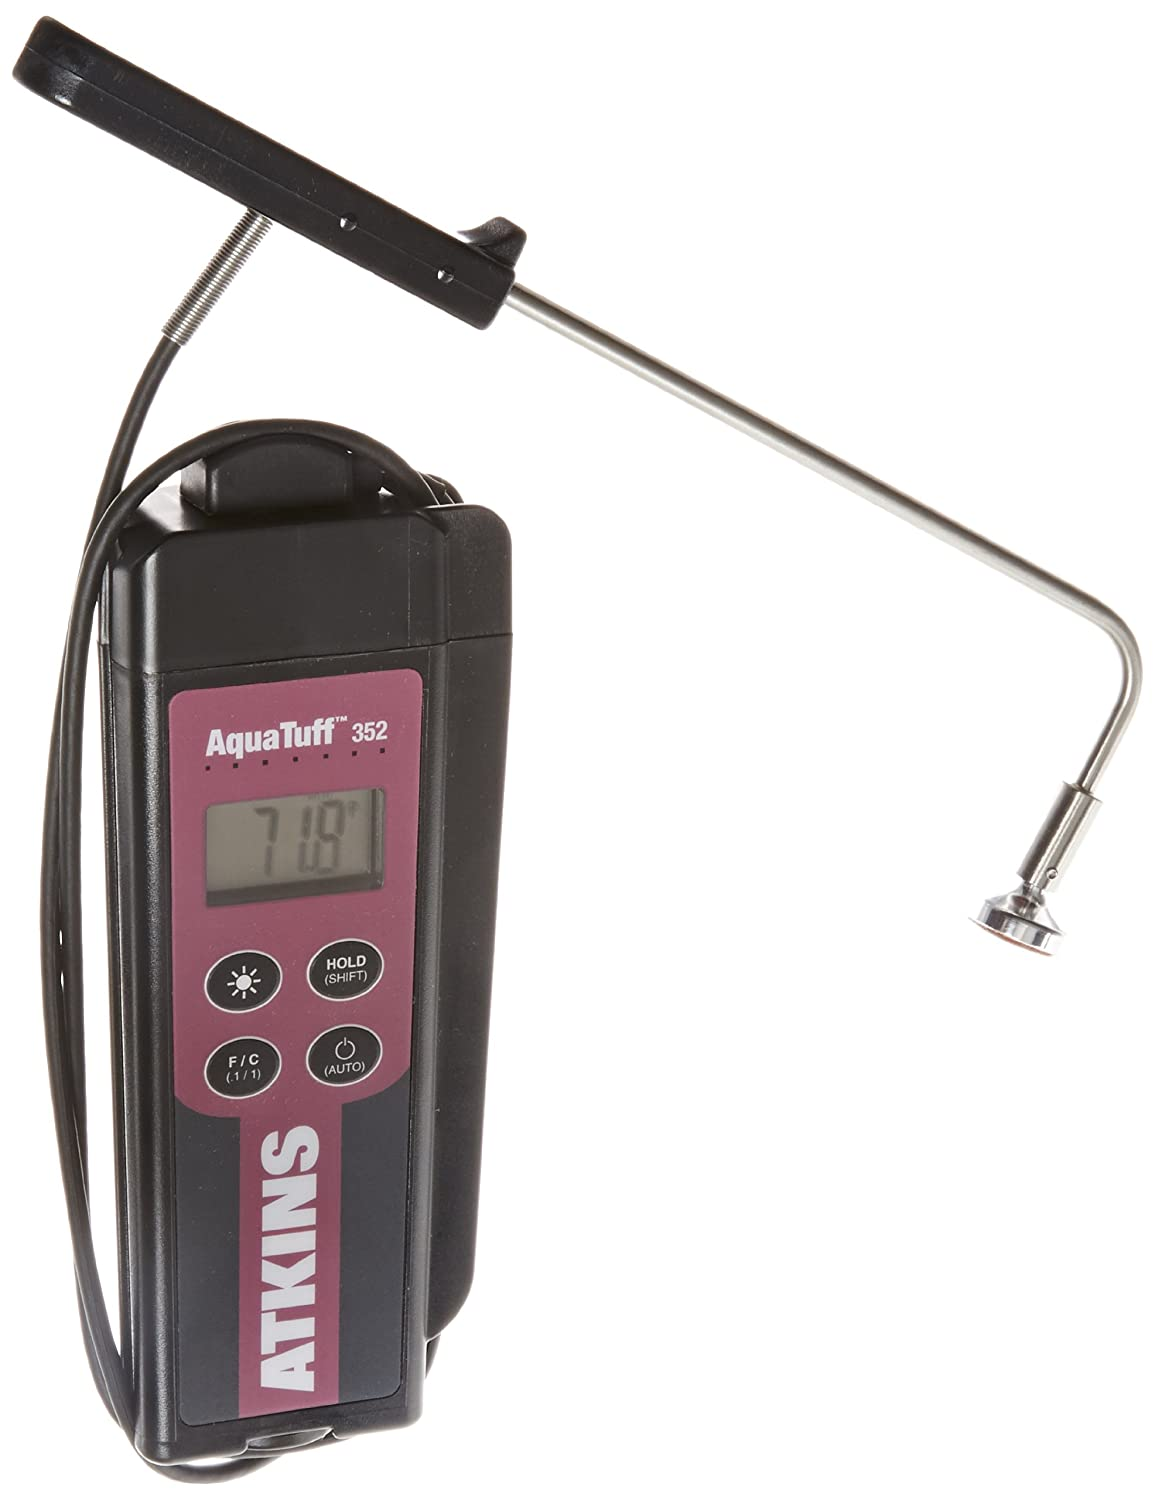 -100 to 500 Degrees F Temperature Range Cooper-Atkins 35235 Series 352 AquaTuff Wrap and Stow Waterproof Thermocouple Instruments with Angled Surface Probe